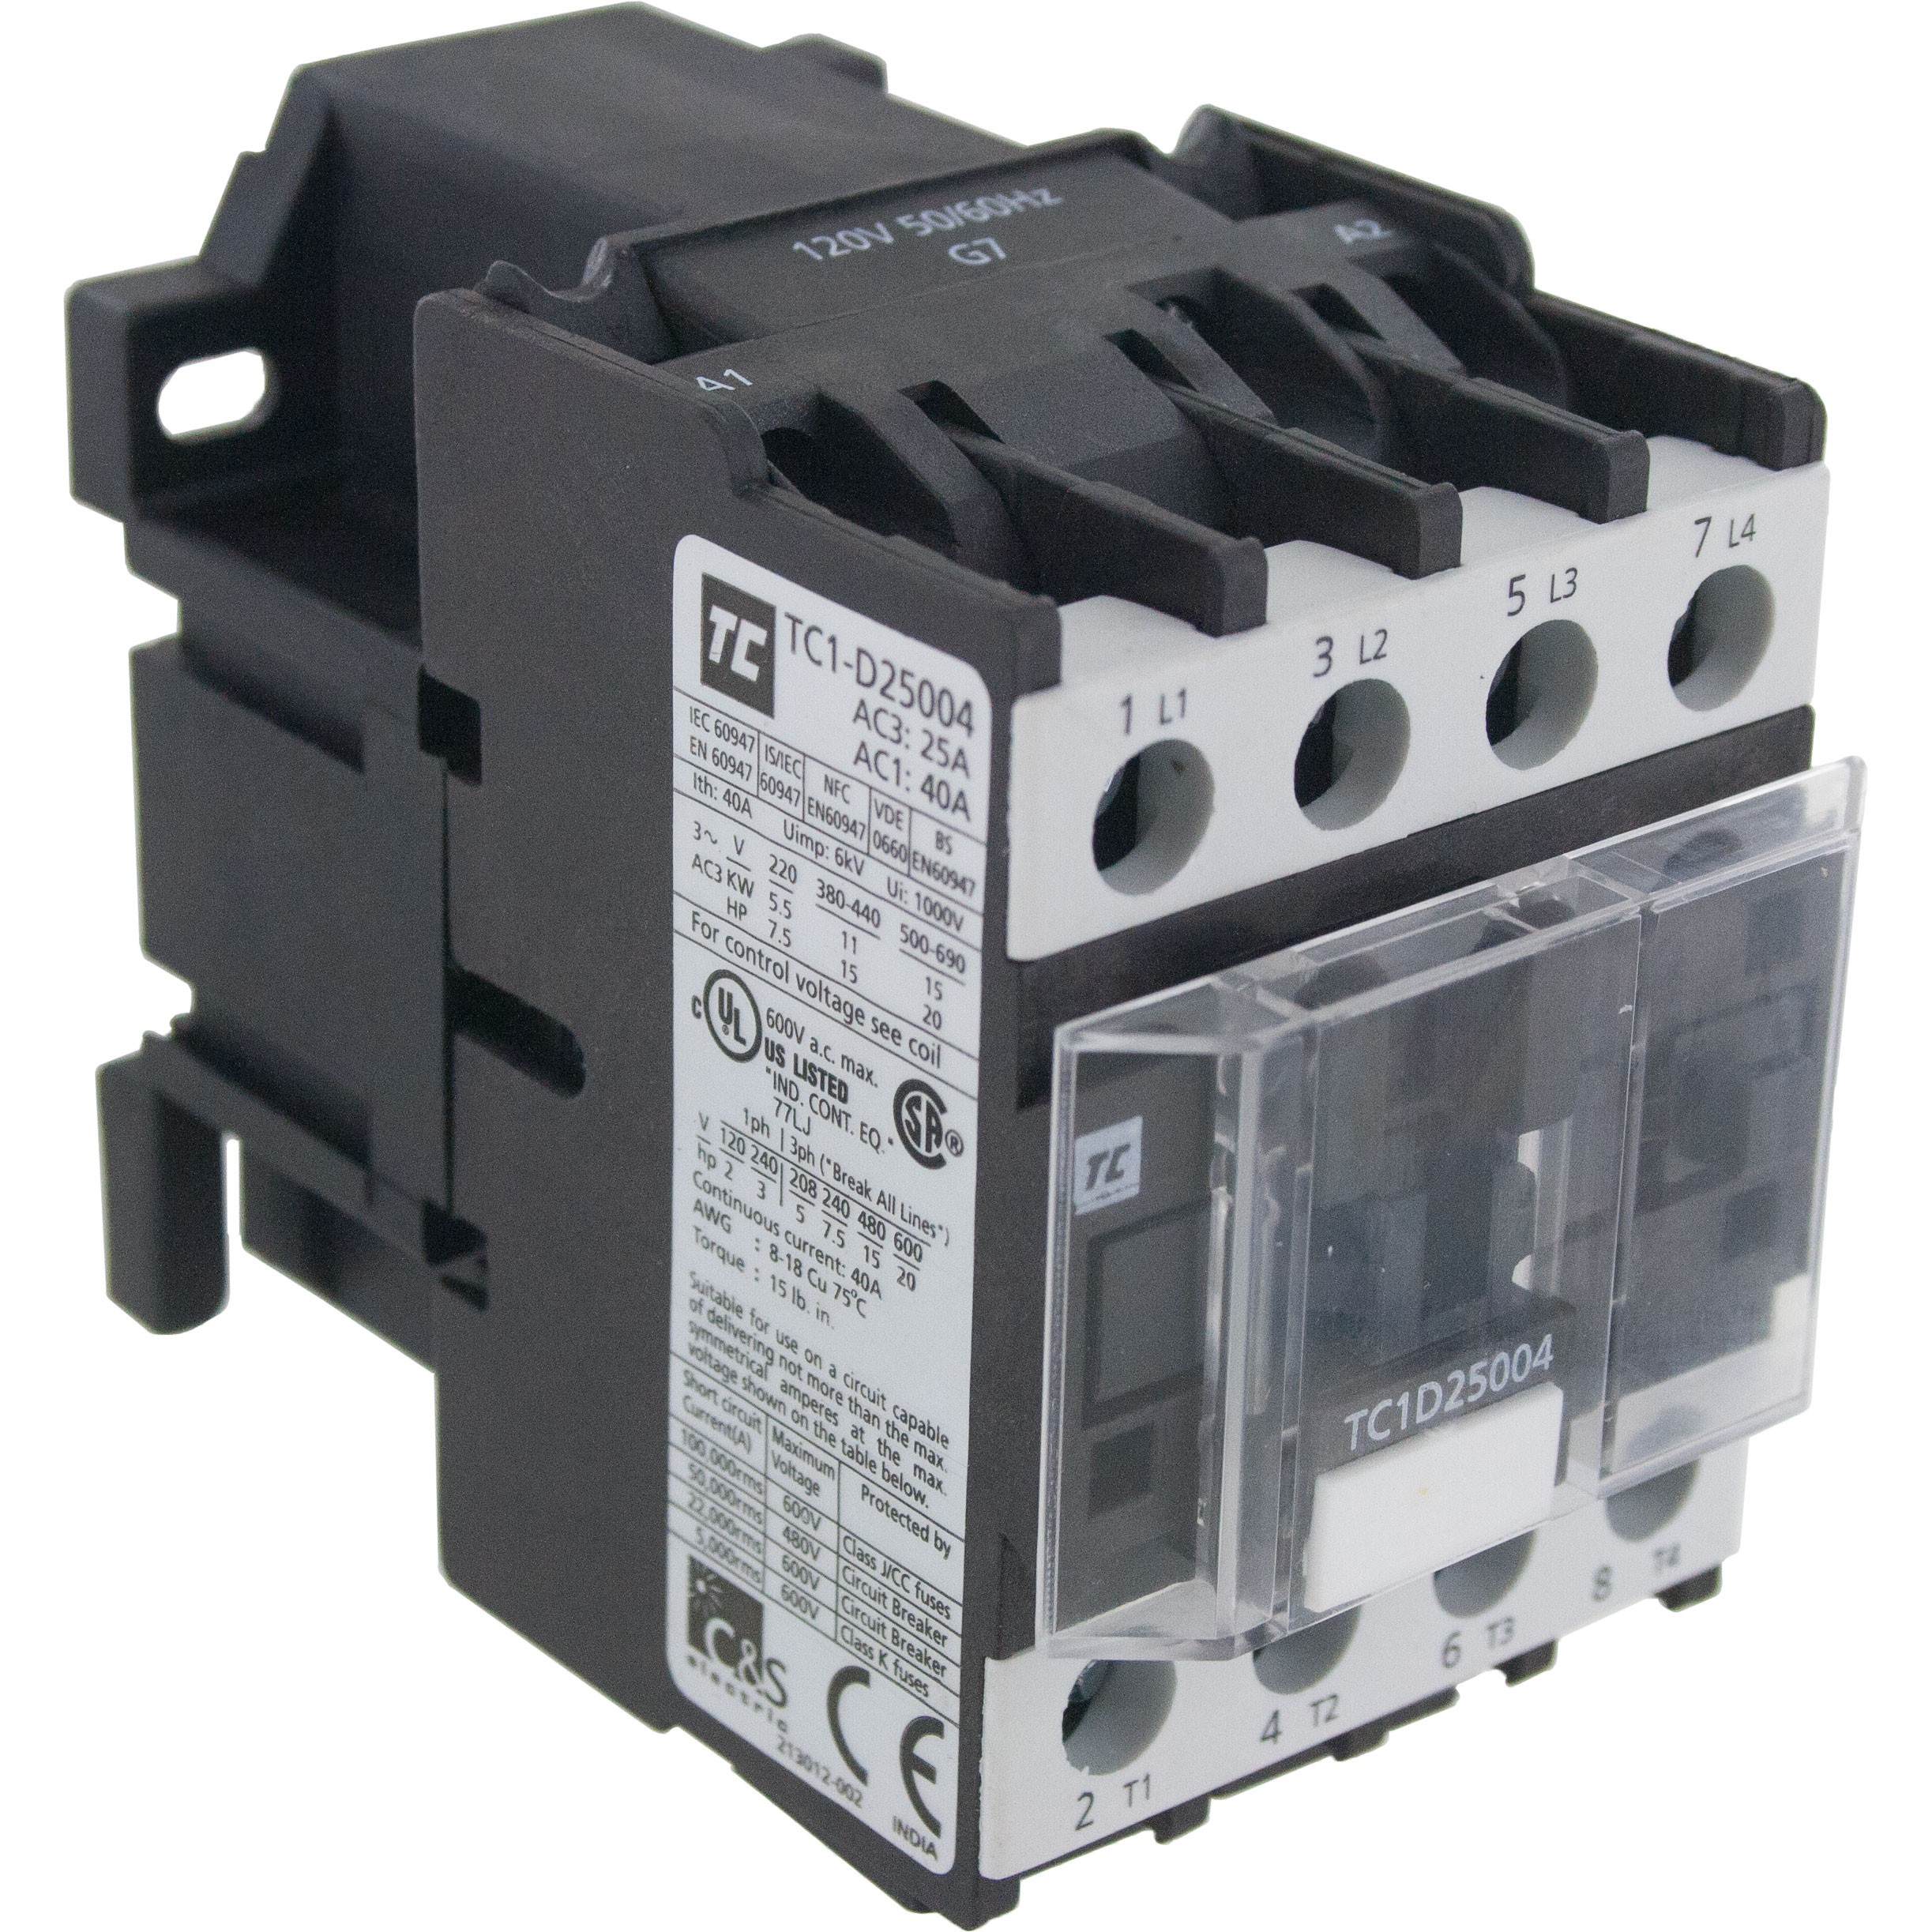 4 Pole Contactor 25 Amp 4 N/O 220 Volt AC Coil Angle